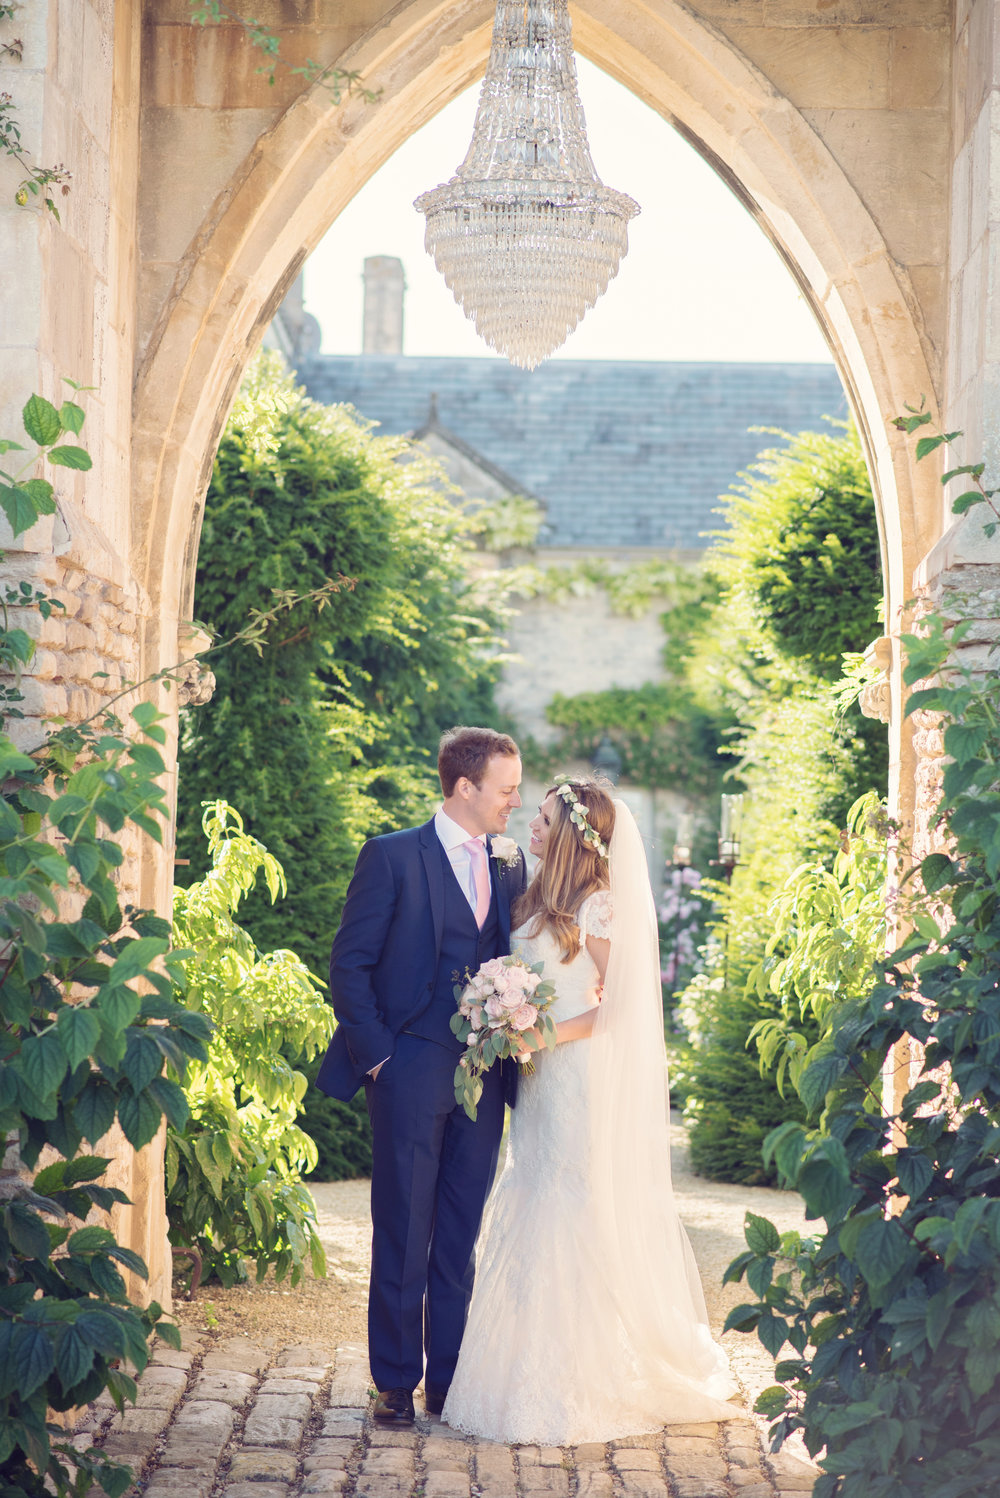 the-lost-orangery-weddings-jessica-raphael-photography